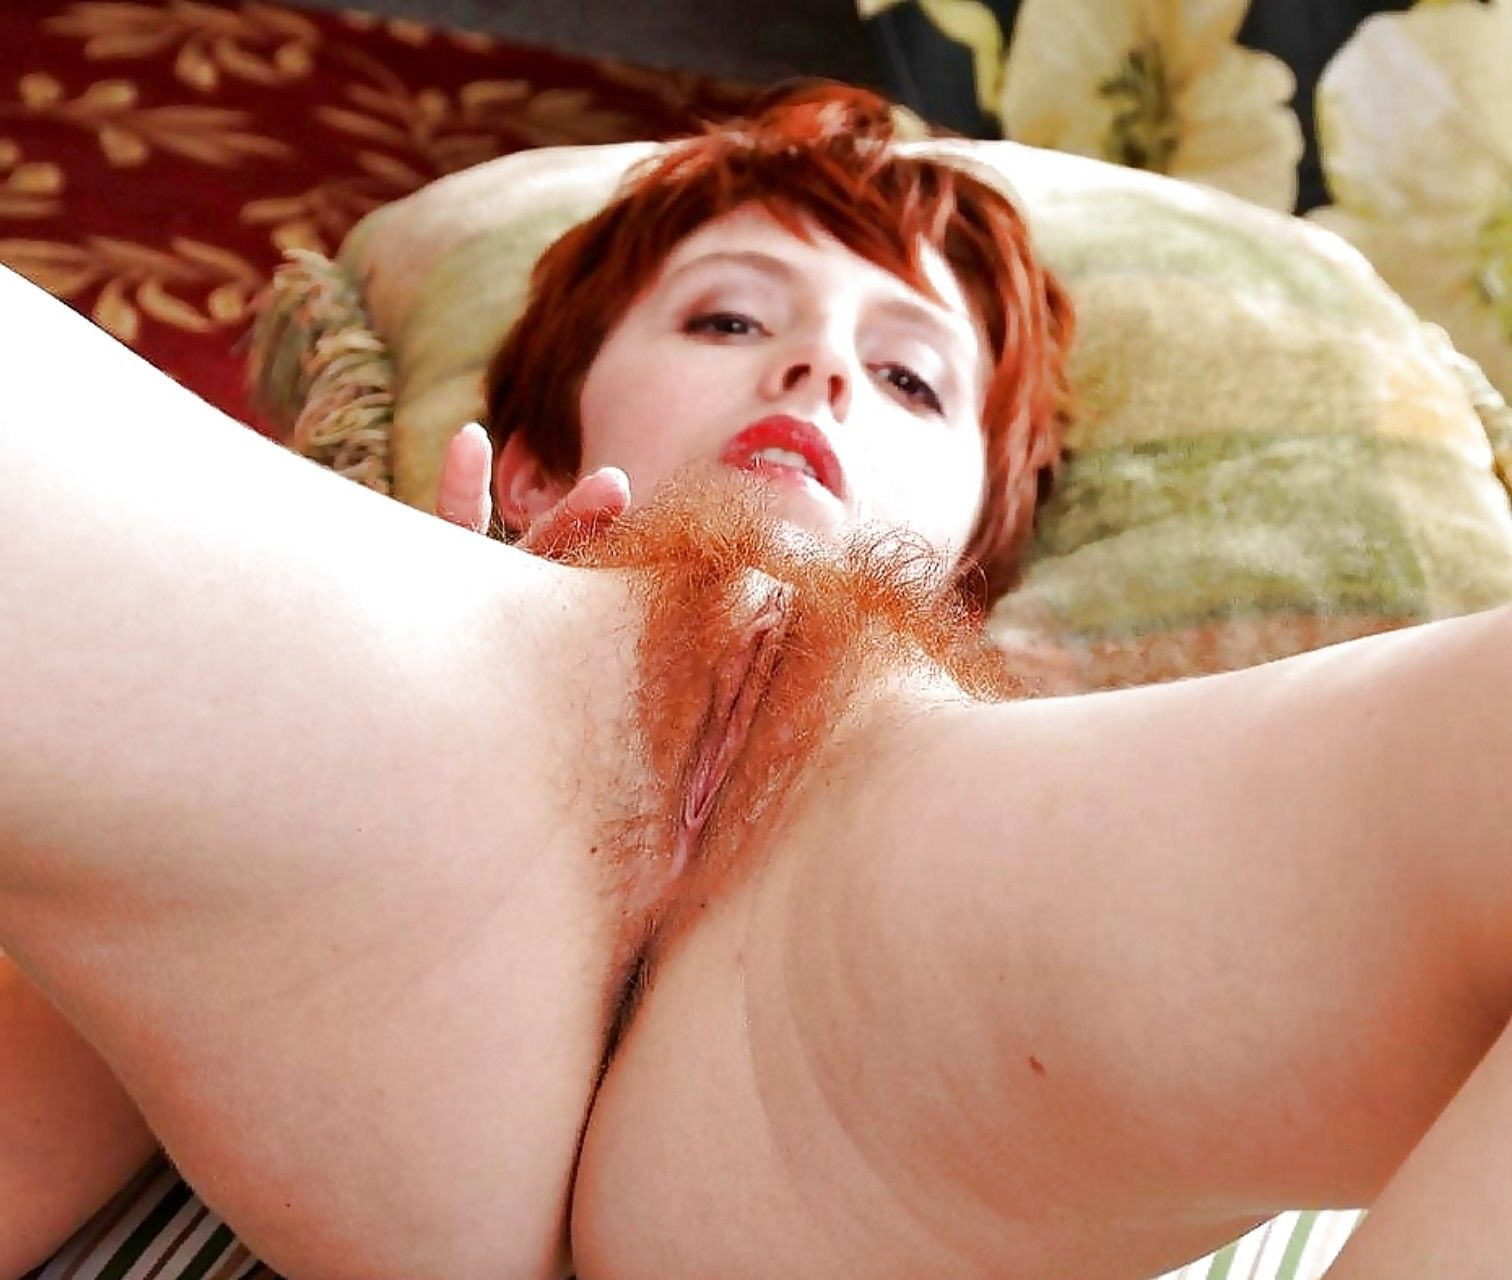 female-red-neck-pussies-tits-sex